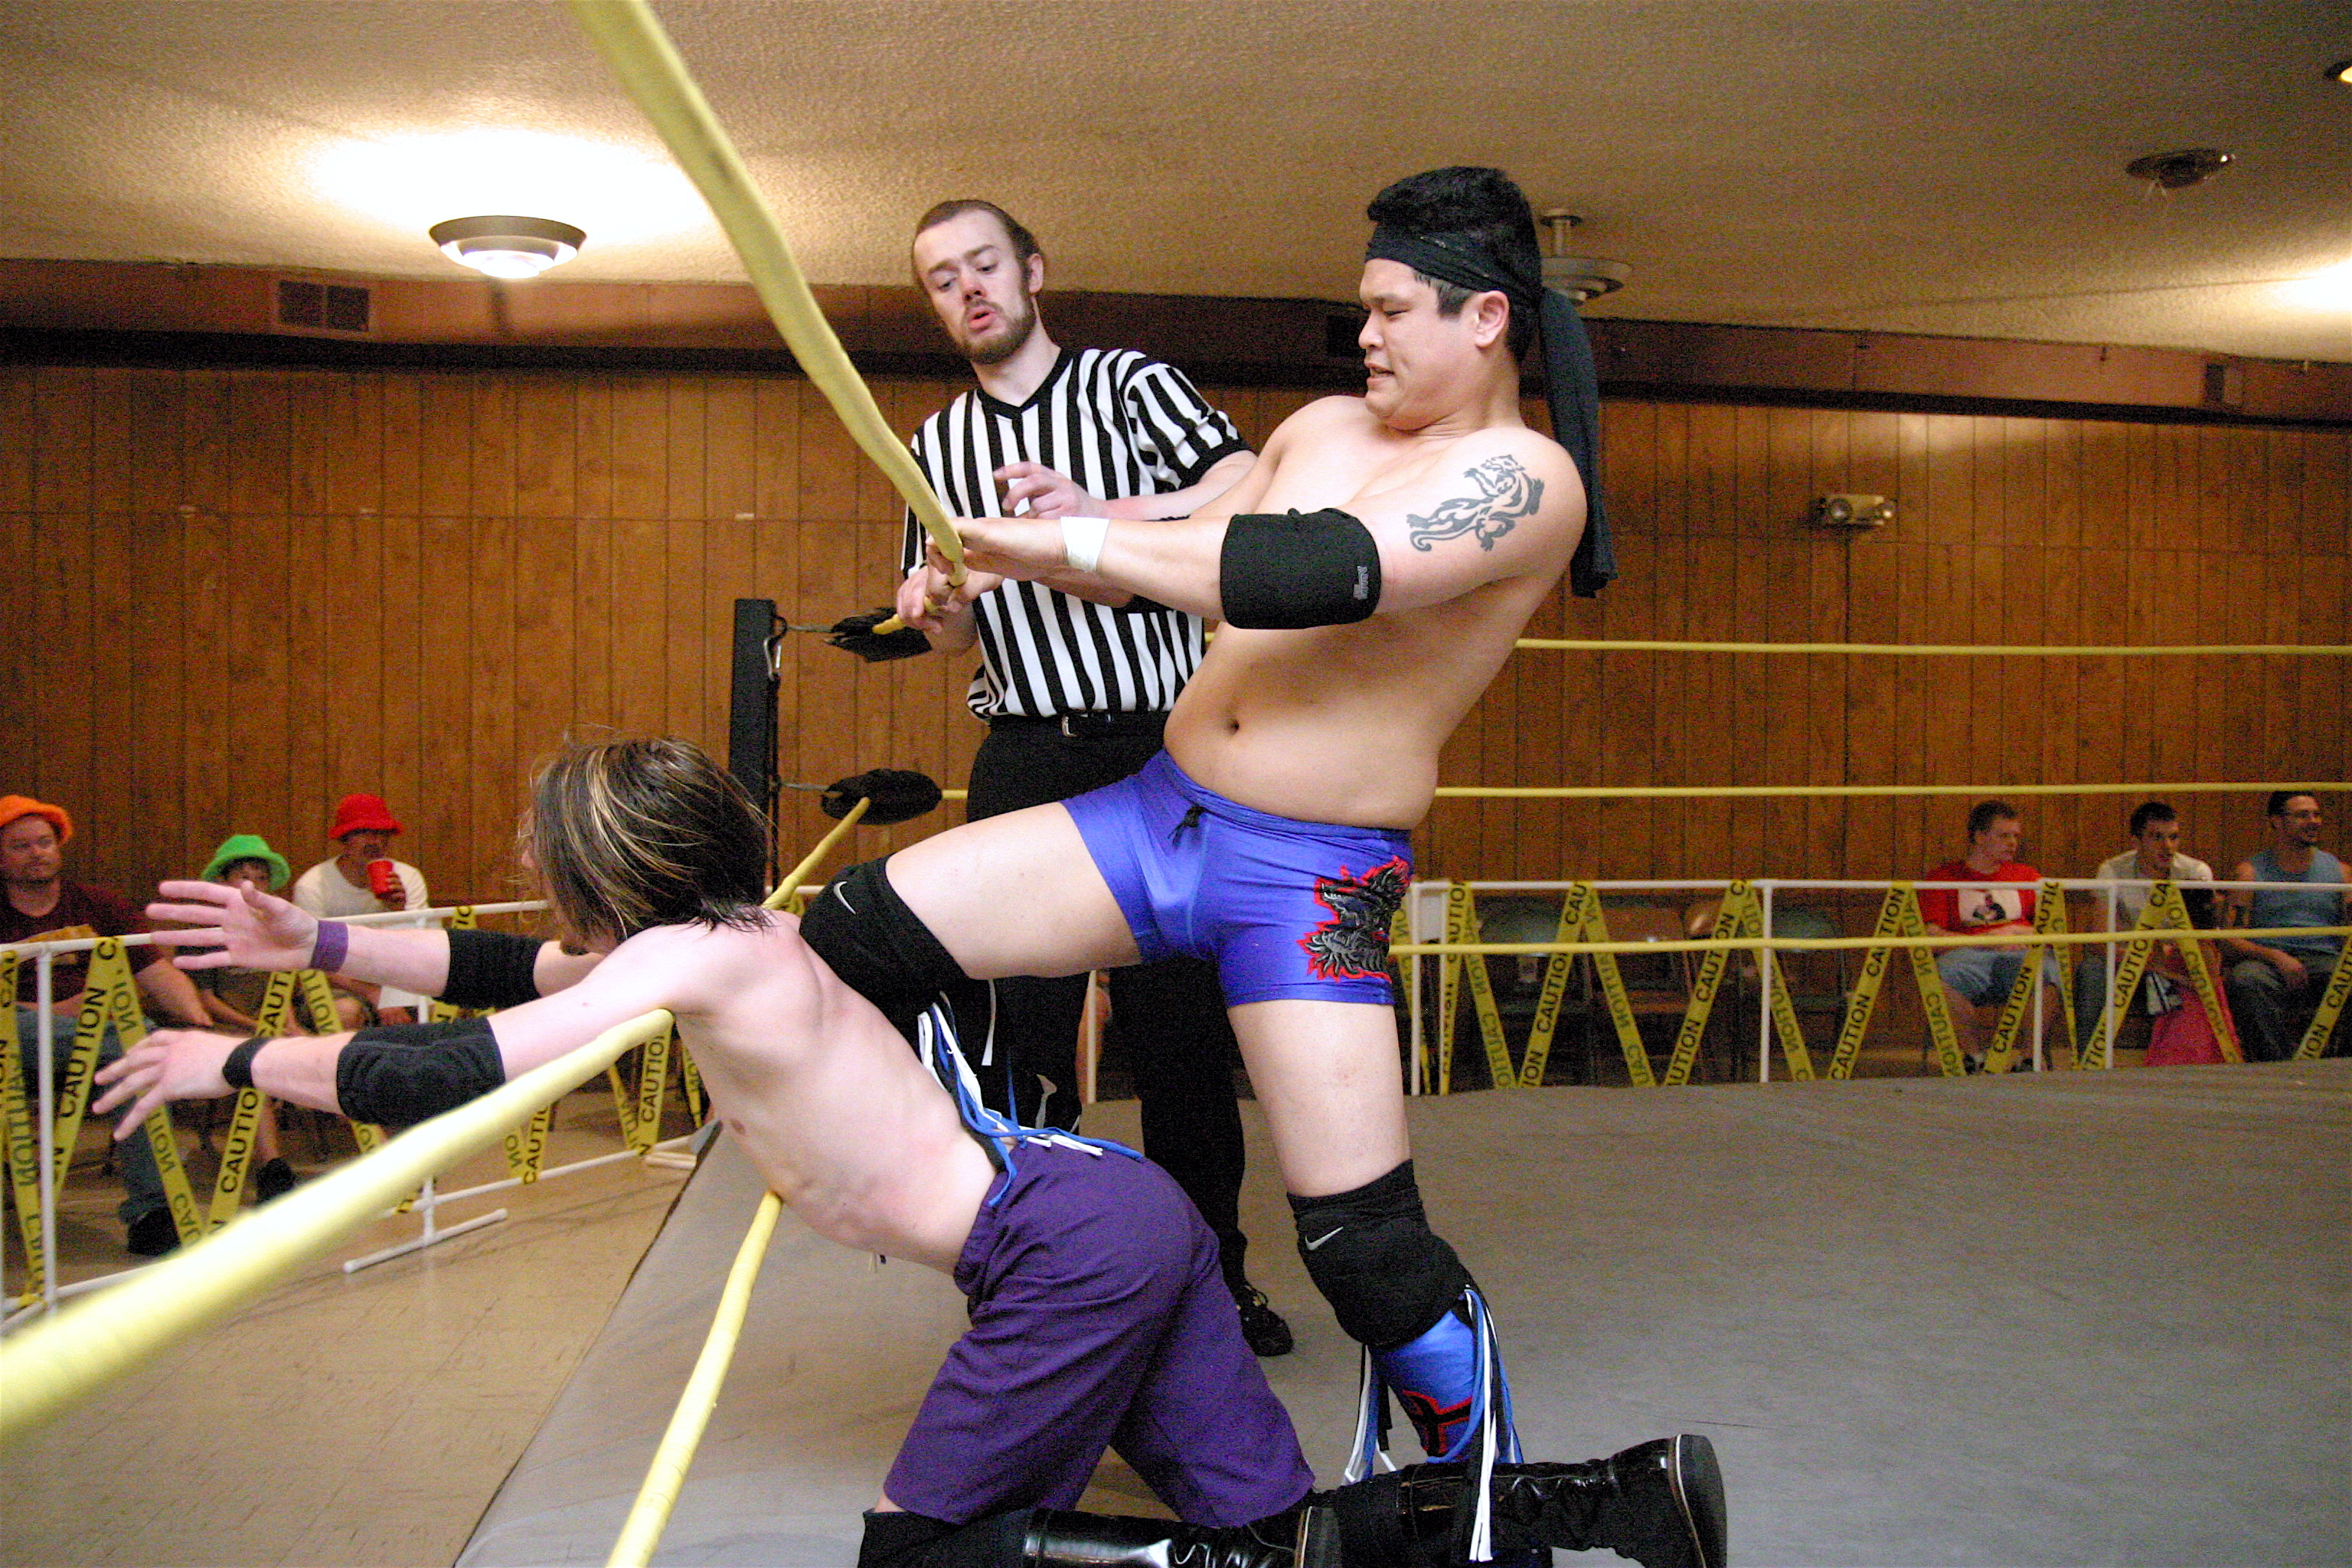 Ricky Kwong gets nasty using the ring ropes (Photo Credit: Mike Van Hoogstraat)